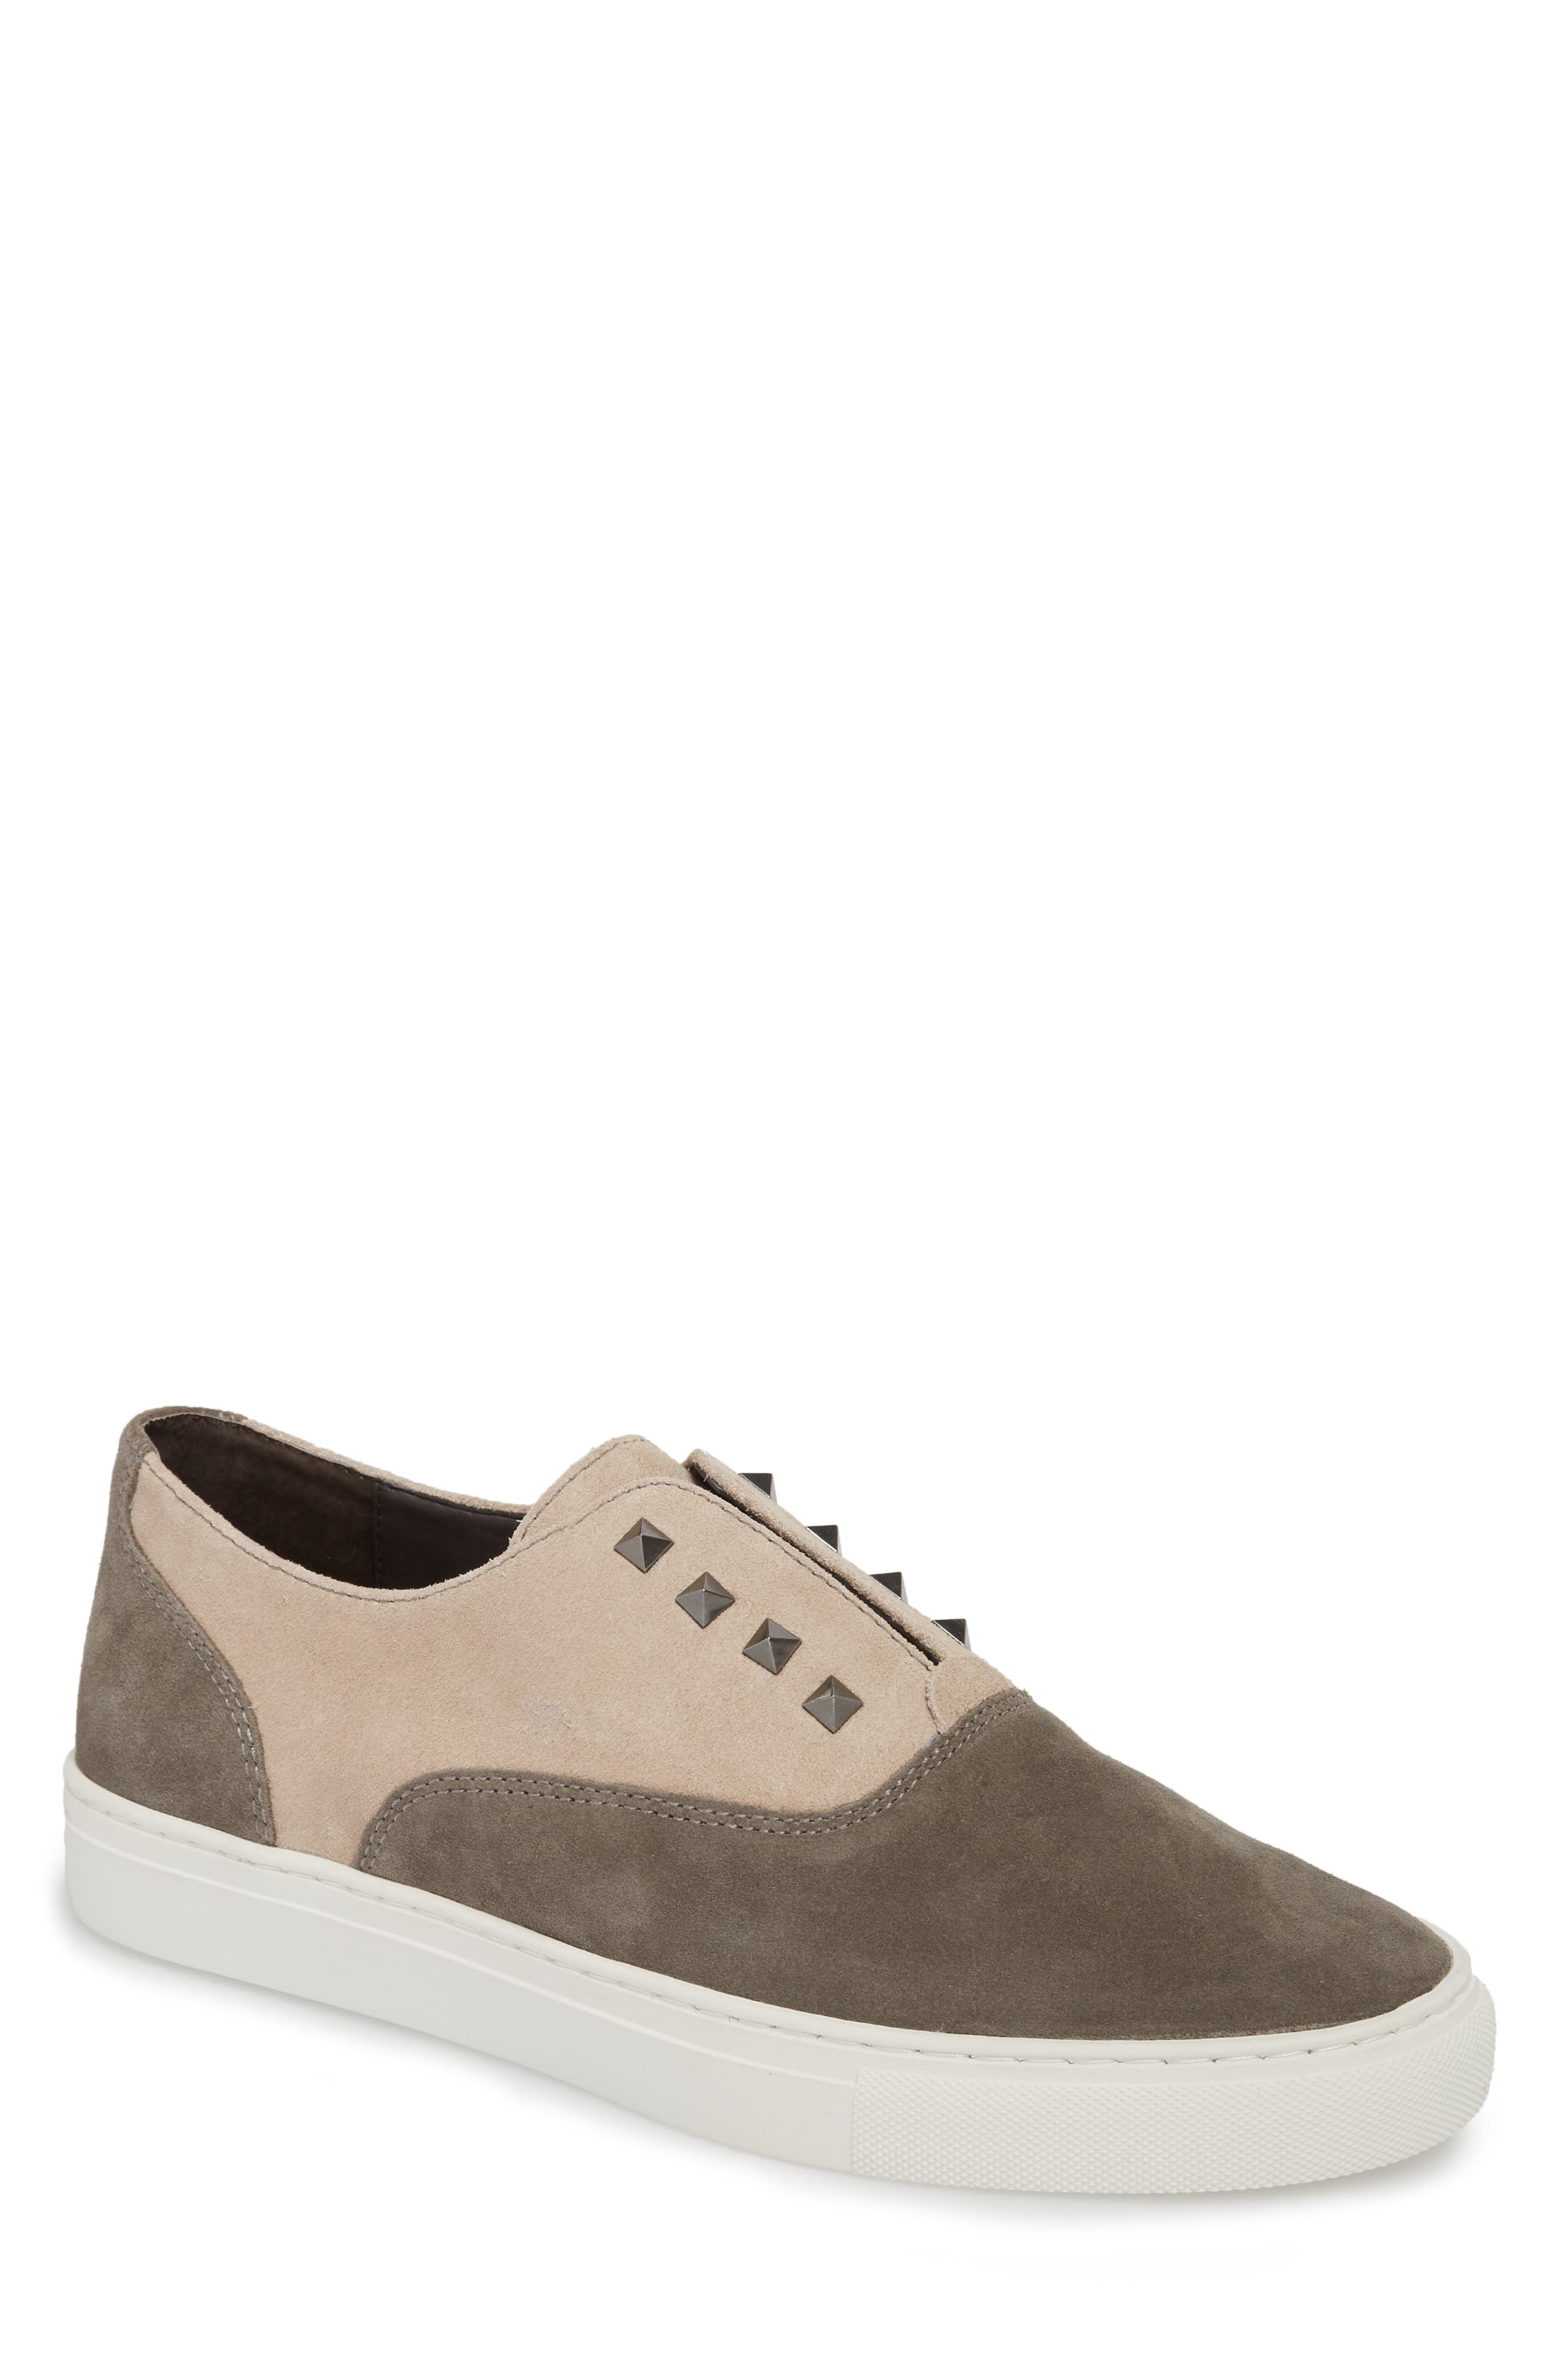 Aryo Studded Laceless Sneaker,                         Main,                         color, Chocolate/ Sand Suede